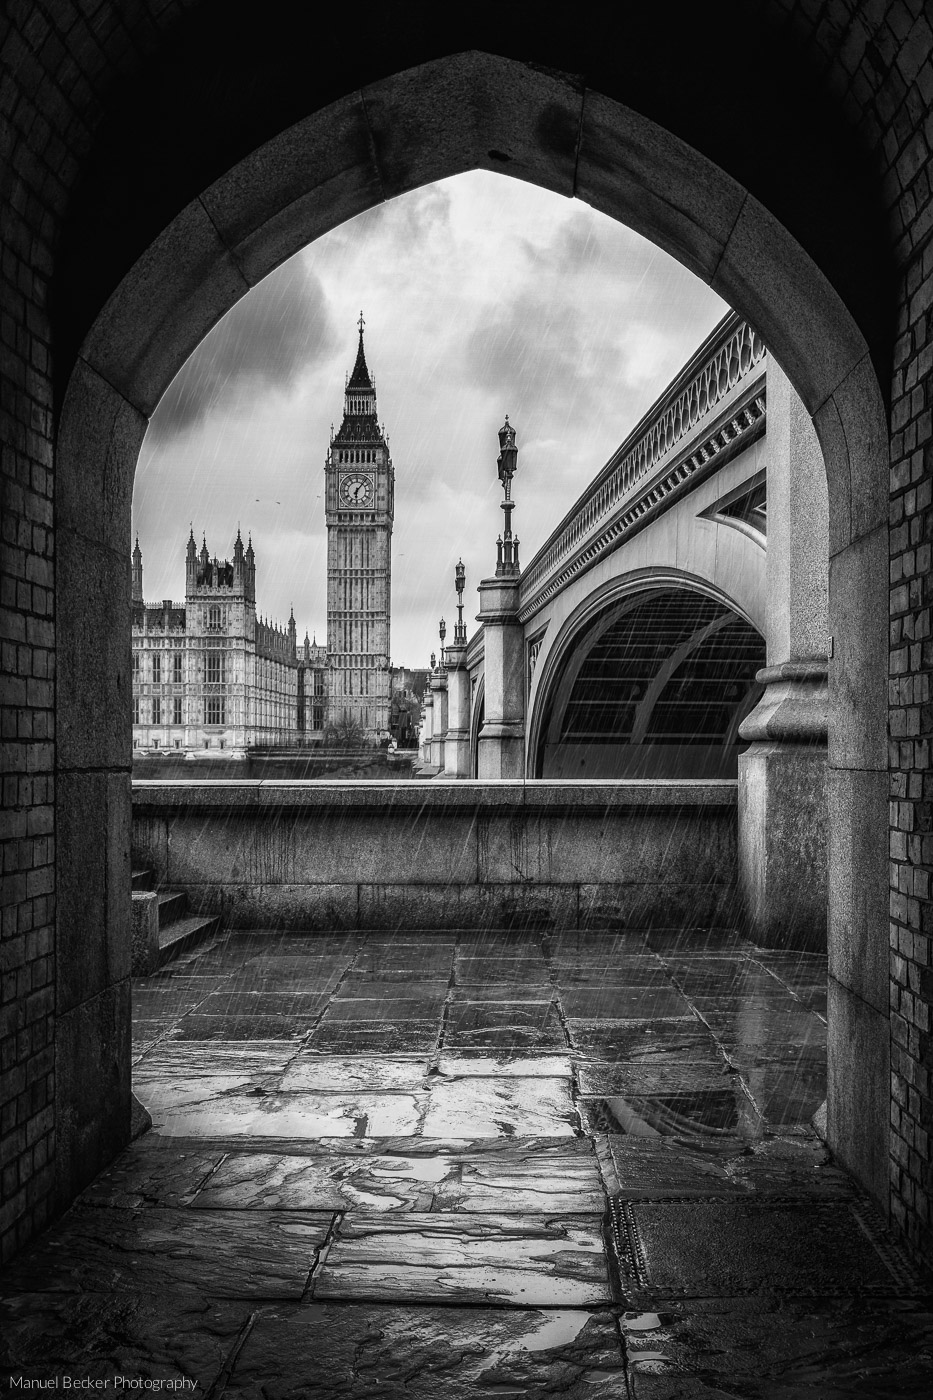 View to Big Ben, London, United Kingdom